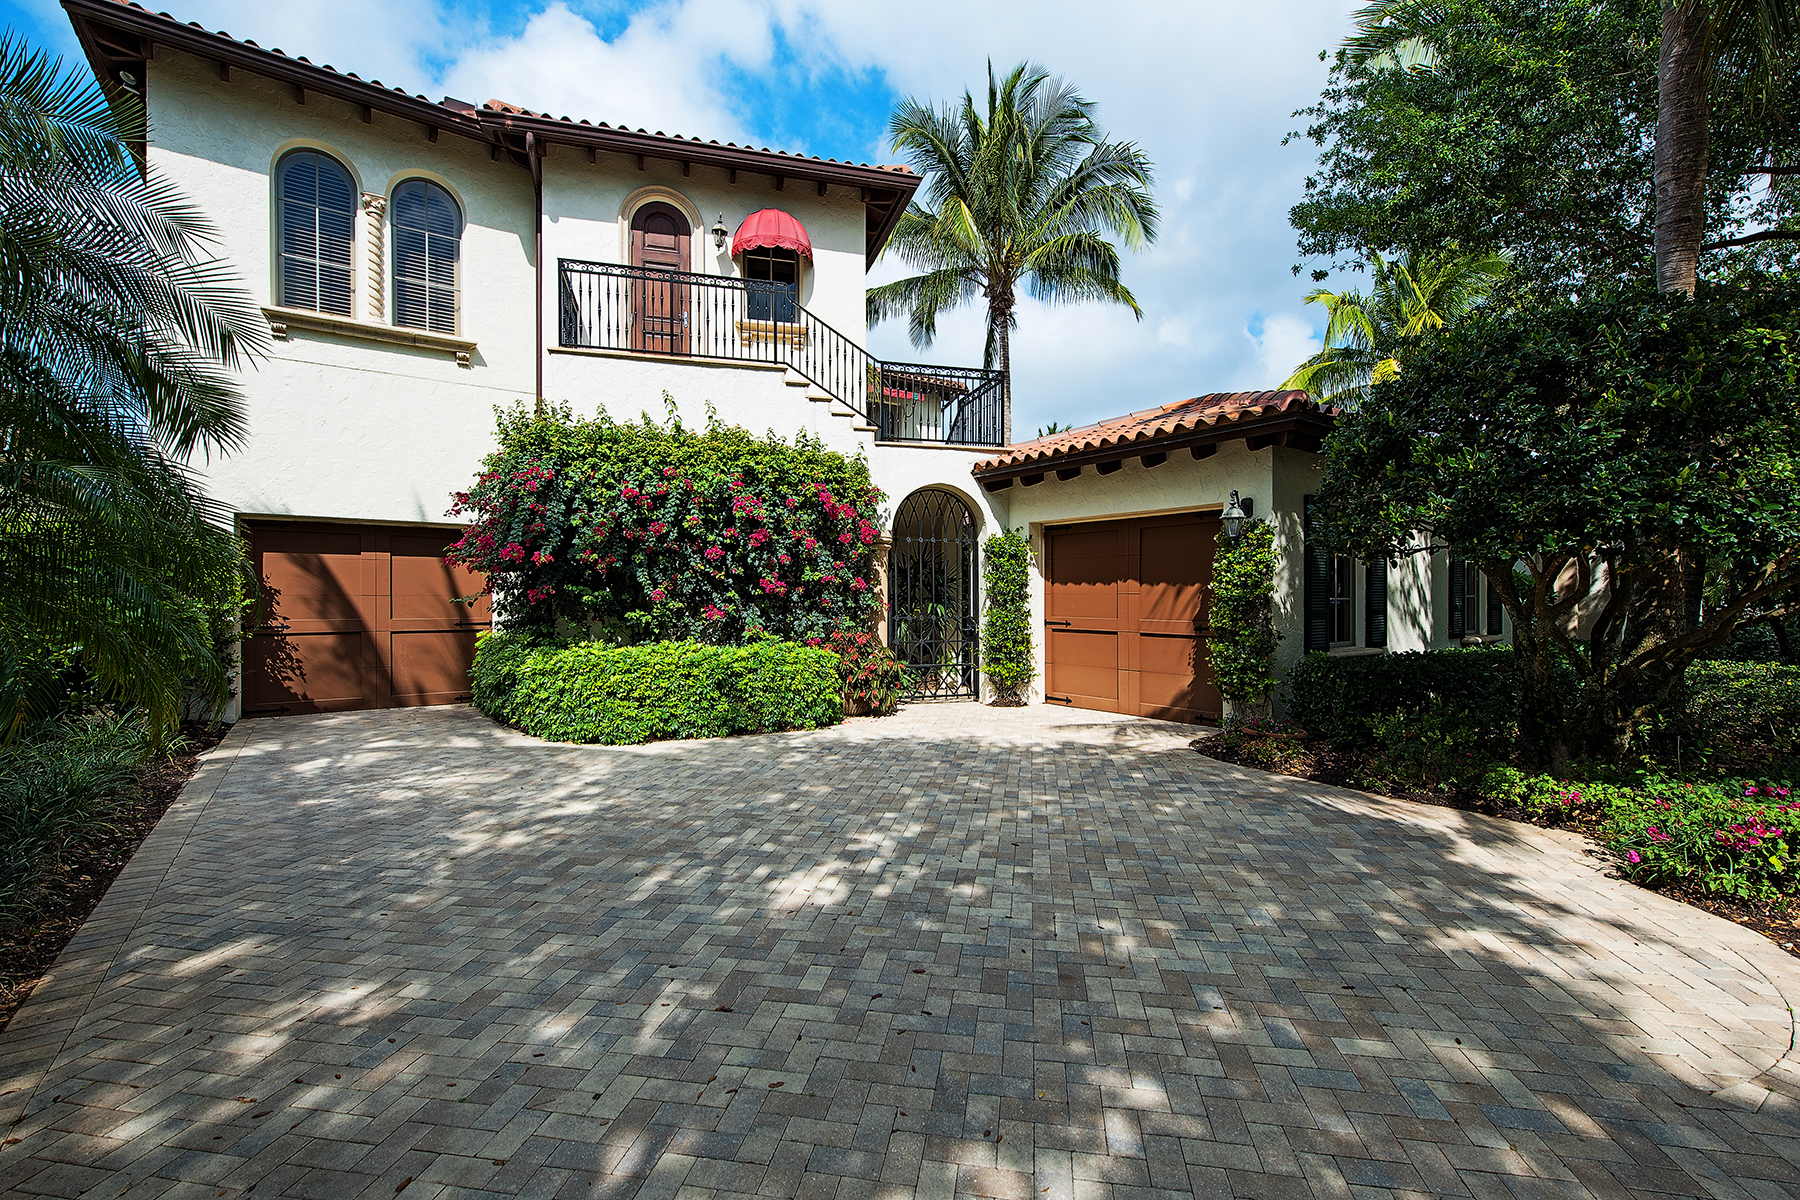 Single Family Home for Sale at GREY OAKS - ESTUARY AT GREY OAKS 1347 Noble Heron Way Estuary At Grey Oaks, Naples, Florida 34105 United States